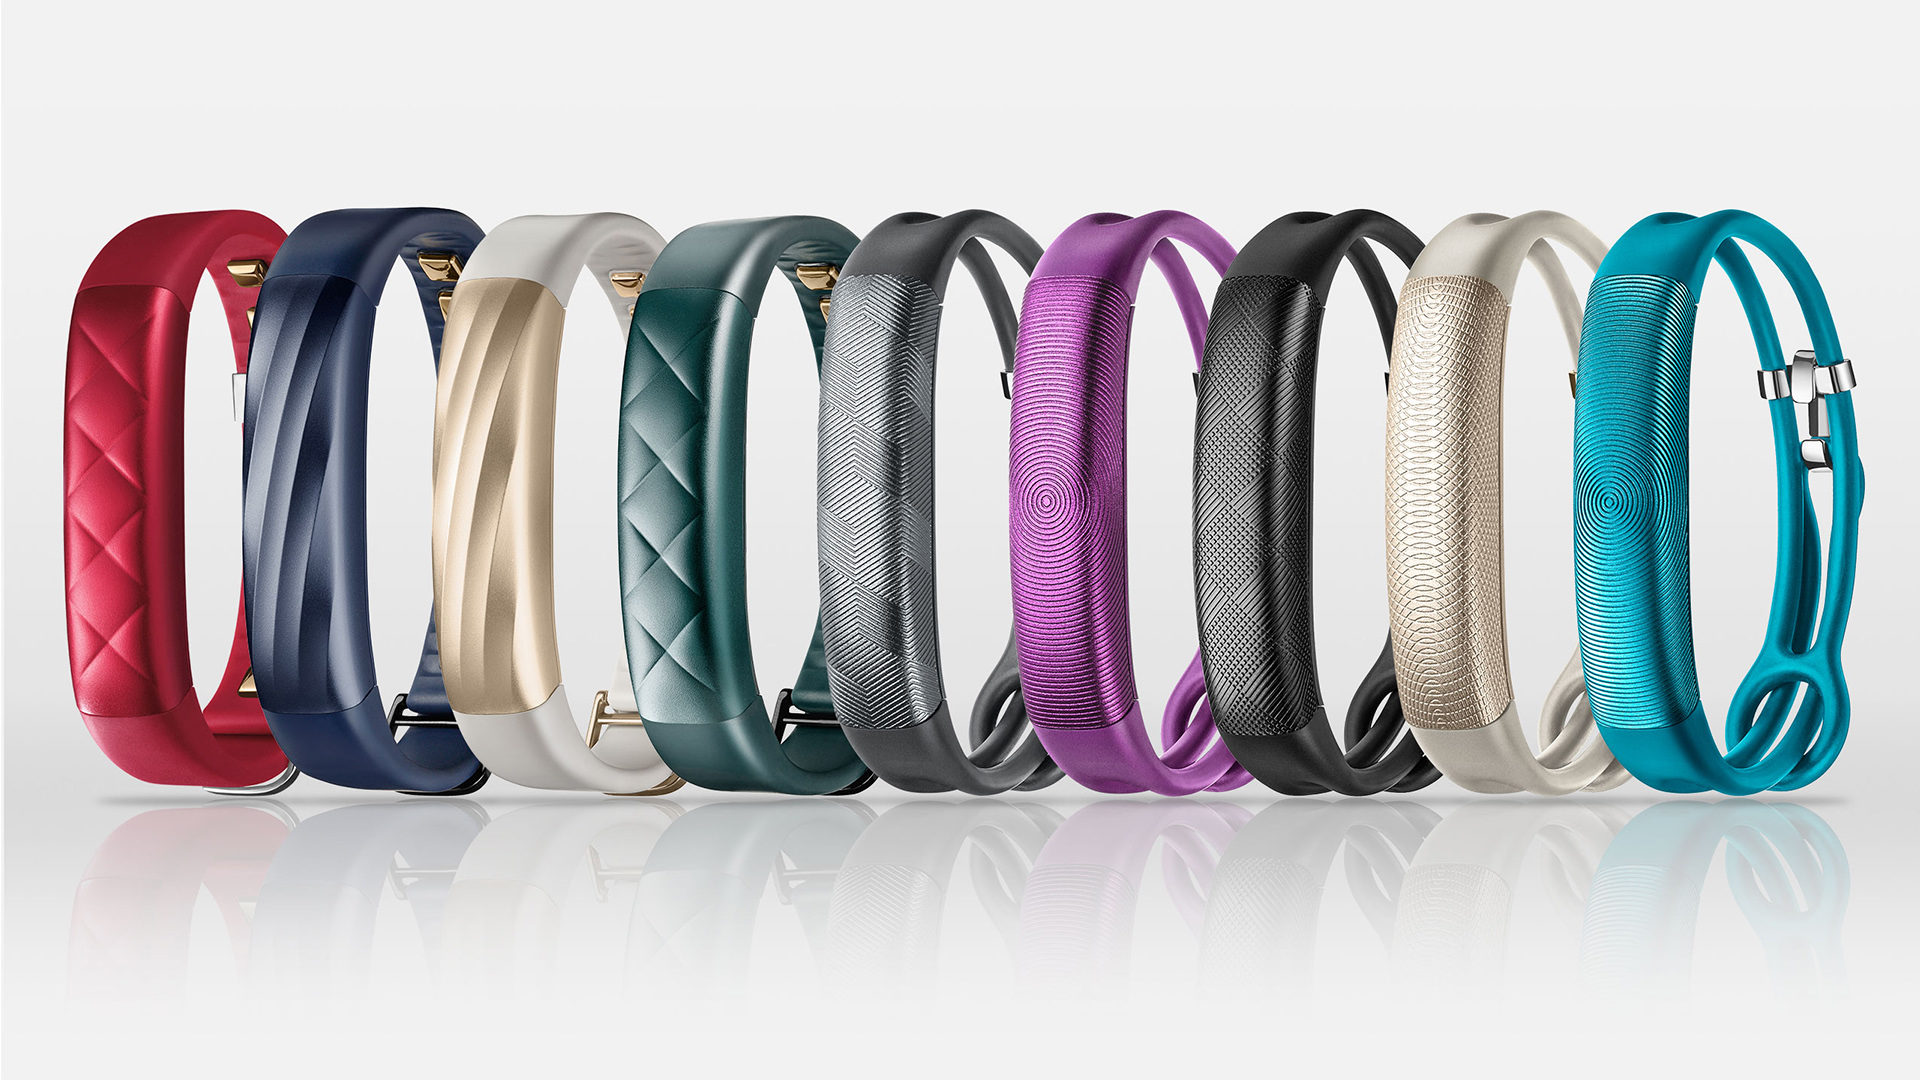 What-Else-Mag-Tecnologia-Jawbone-Cover